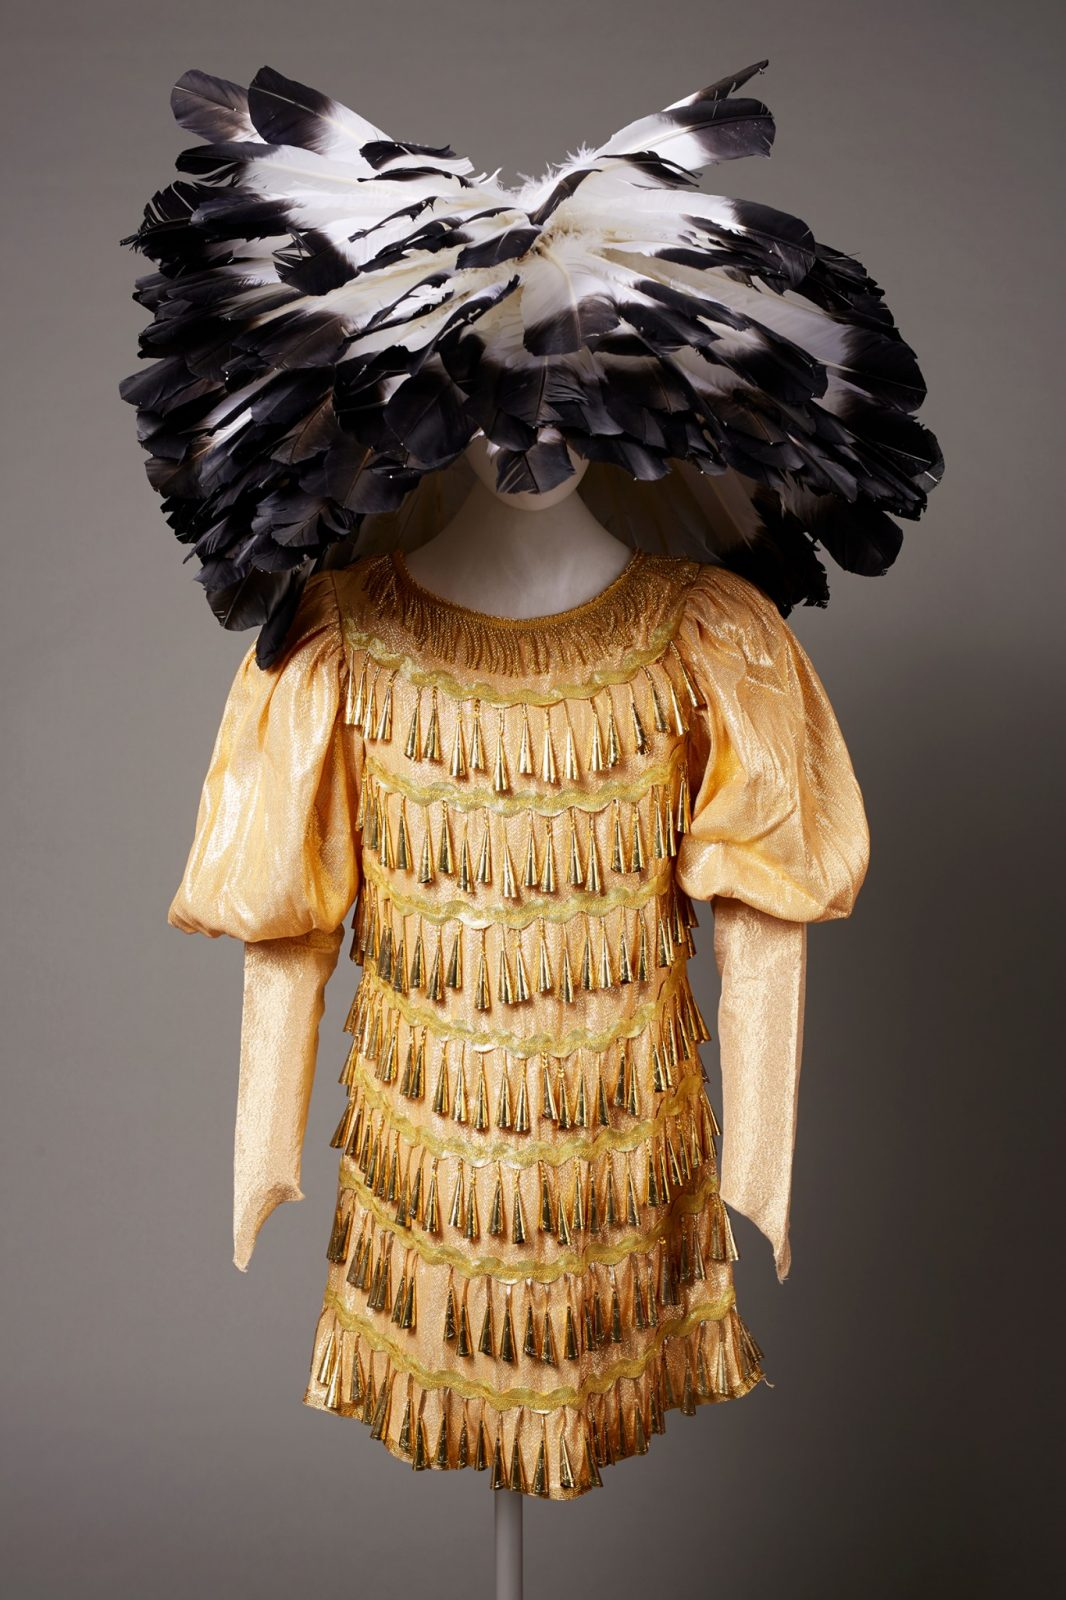 Wendy Red Star's Stands Towards the Sun, 2011. A metallic gold dress with puff sleeves on a mannequin with a large black-tipped white feathered cap obscuring the head. The dress is covered in 7 even, horizontal rows of gold jingles. The puff sleeves are drawn in at the elbows and extend into sleeves.